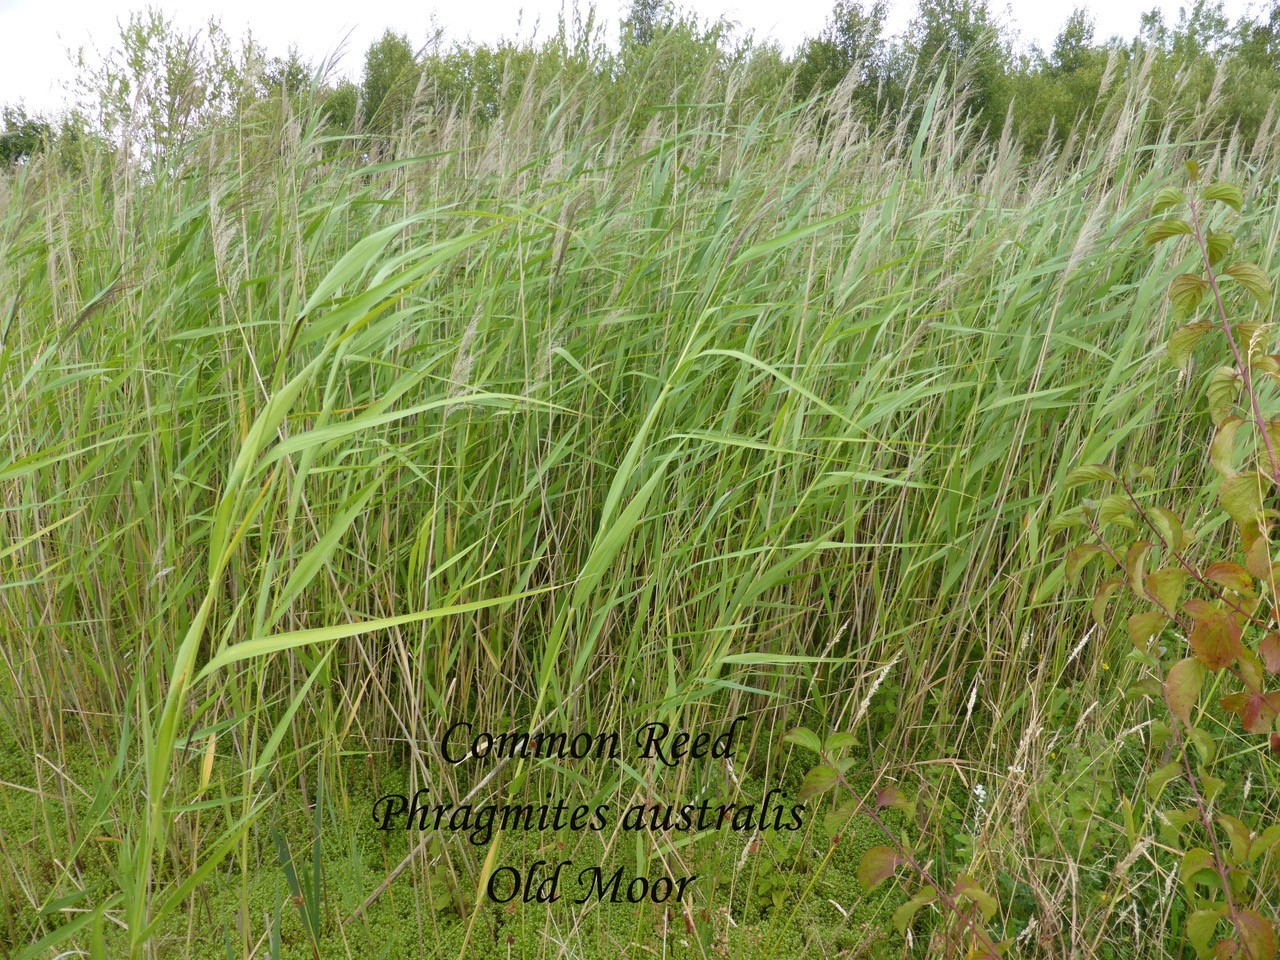 Common Reed, Old Moor